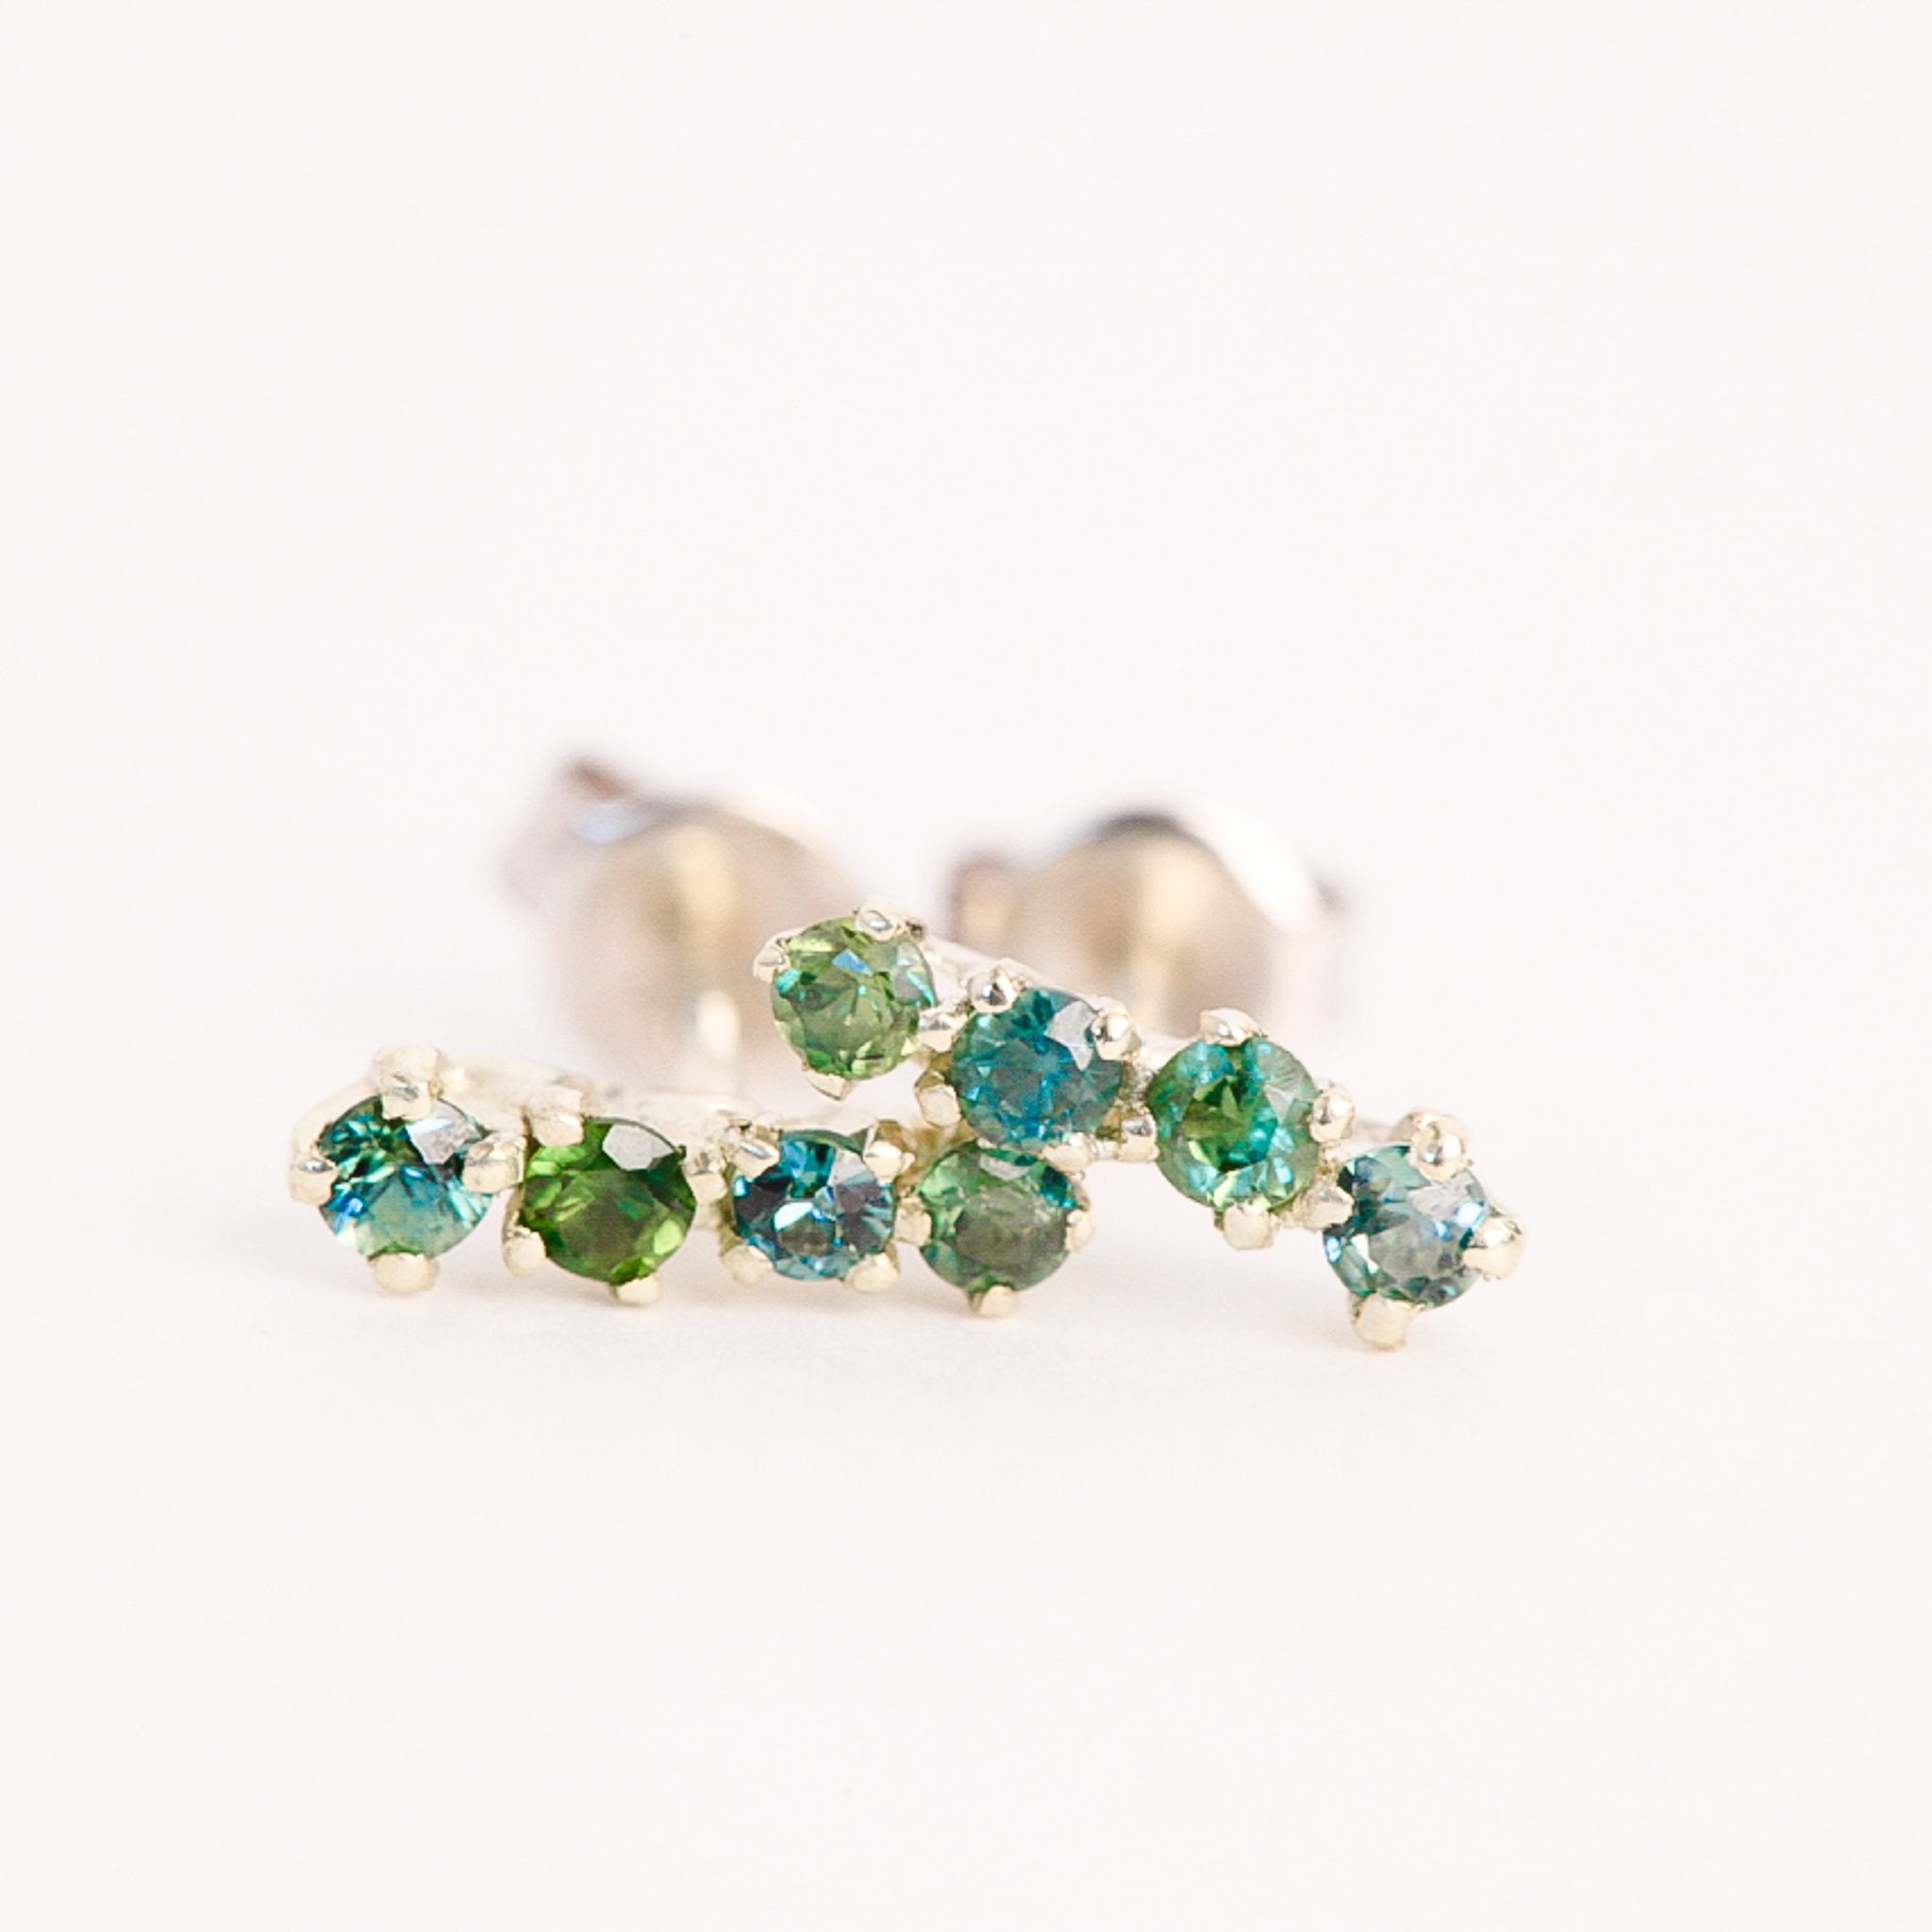 Handmade 9ct White Gold Stud Earrings Ethically Sourced Australian Sapphires, Hand Made Jewellery, Made in Melbourne